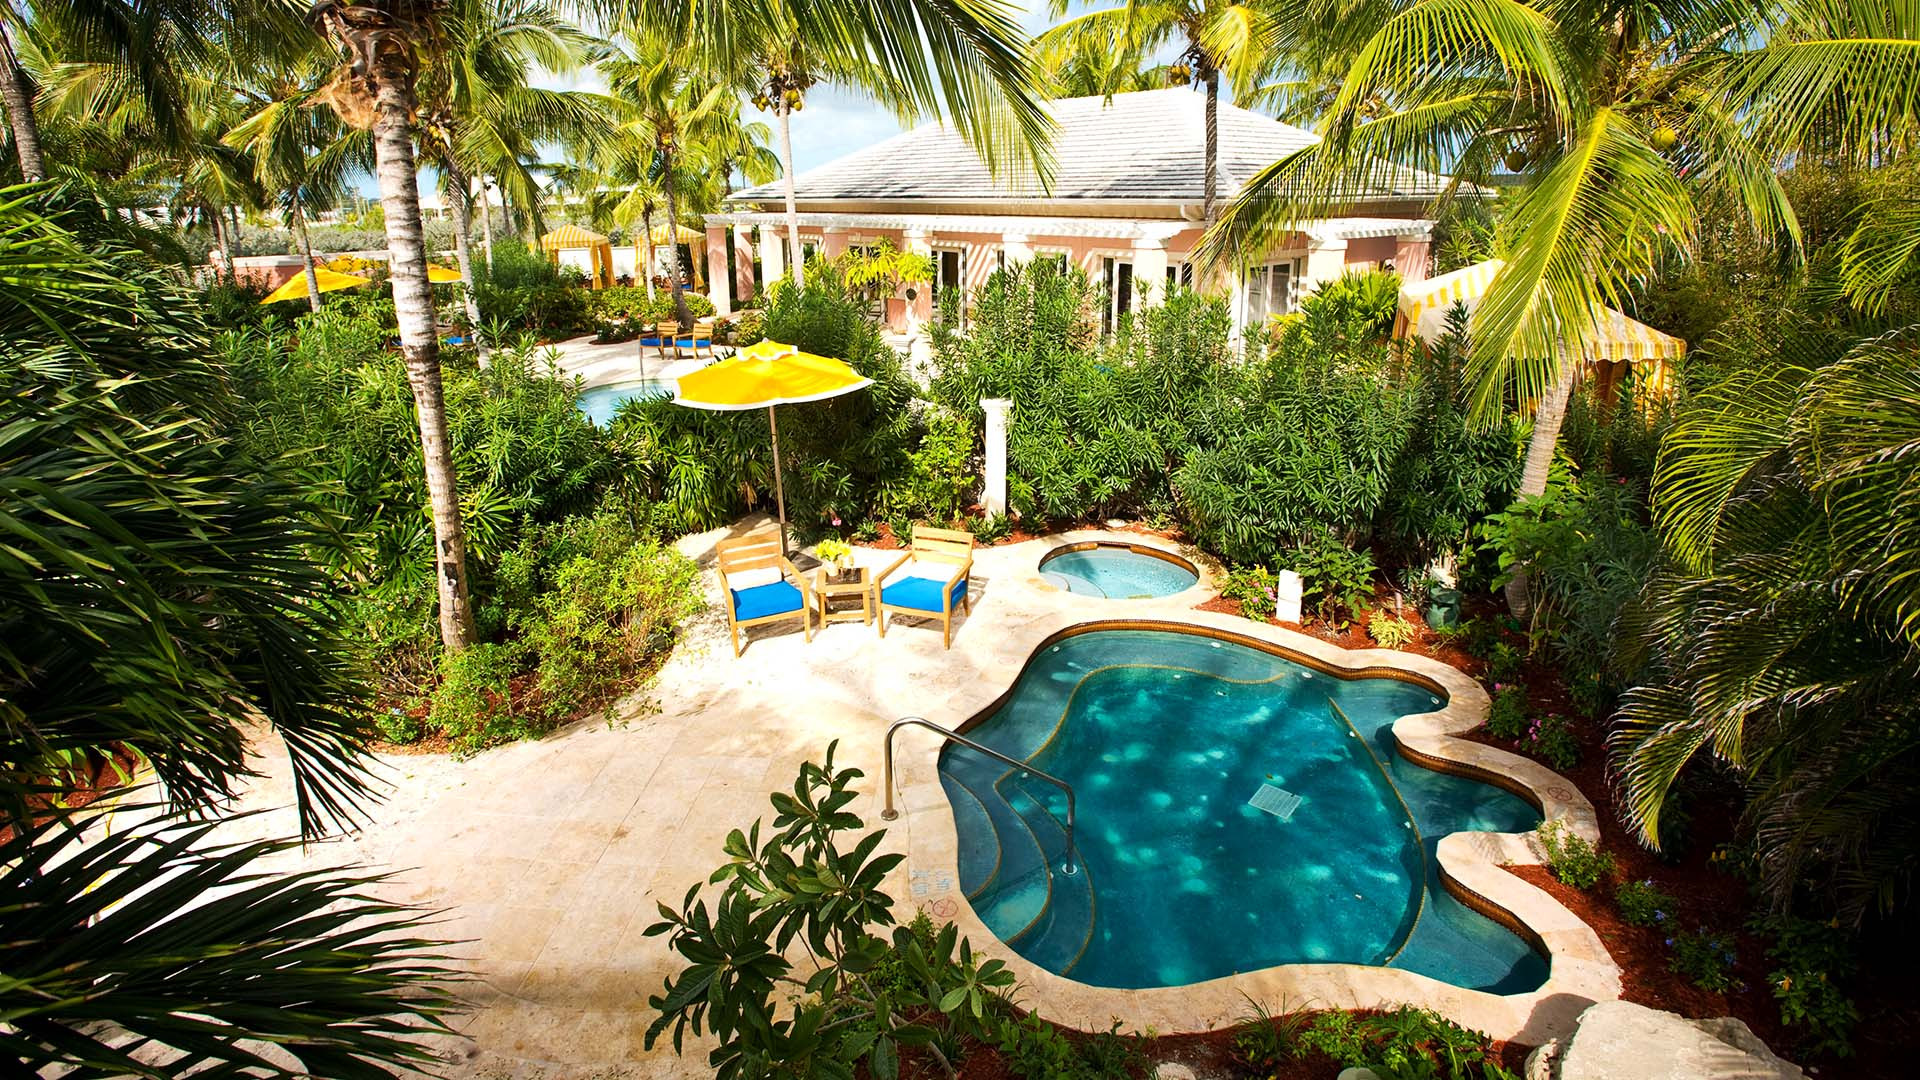 A private pool at Sandals Emerald Bay, The Bahamas